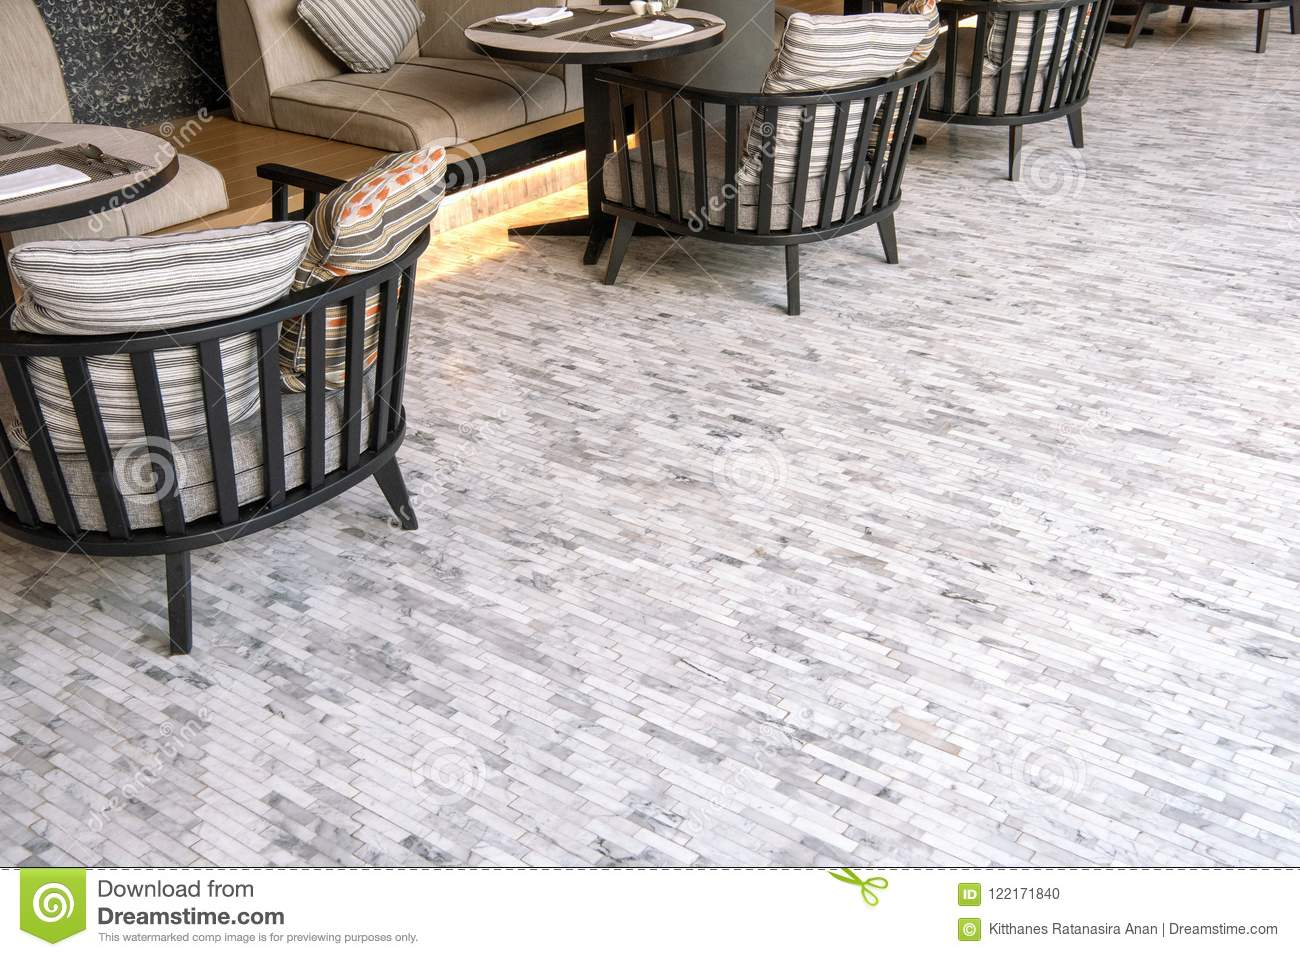 White Marble Tile Flooring Outdoor Living Room Stock Photo Image Of Home Chair 122171840